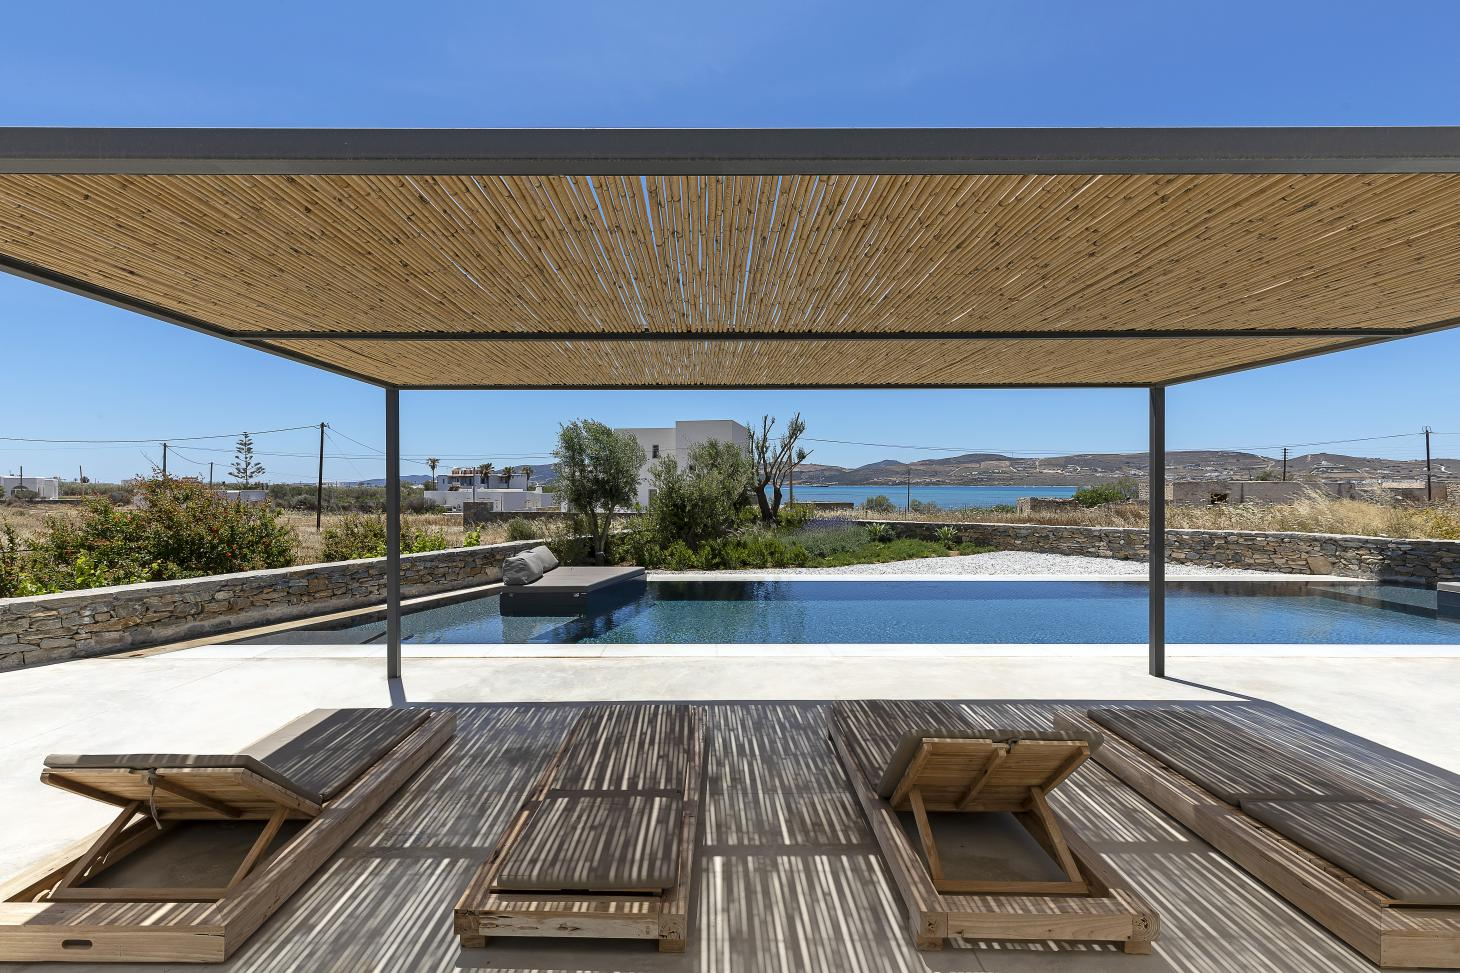 swimming pool and deck chairs under blue skies in KITE House in Greece